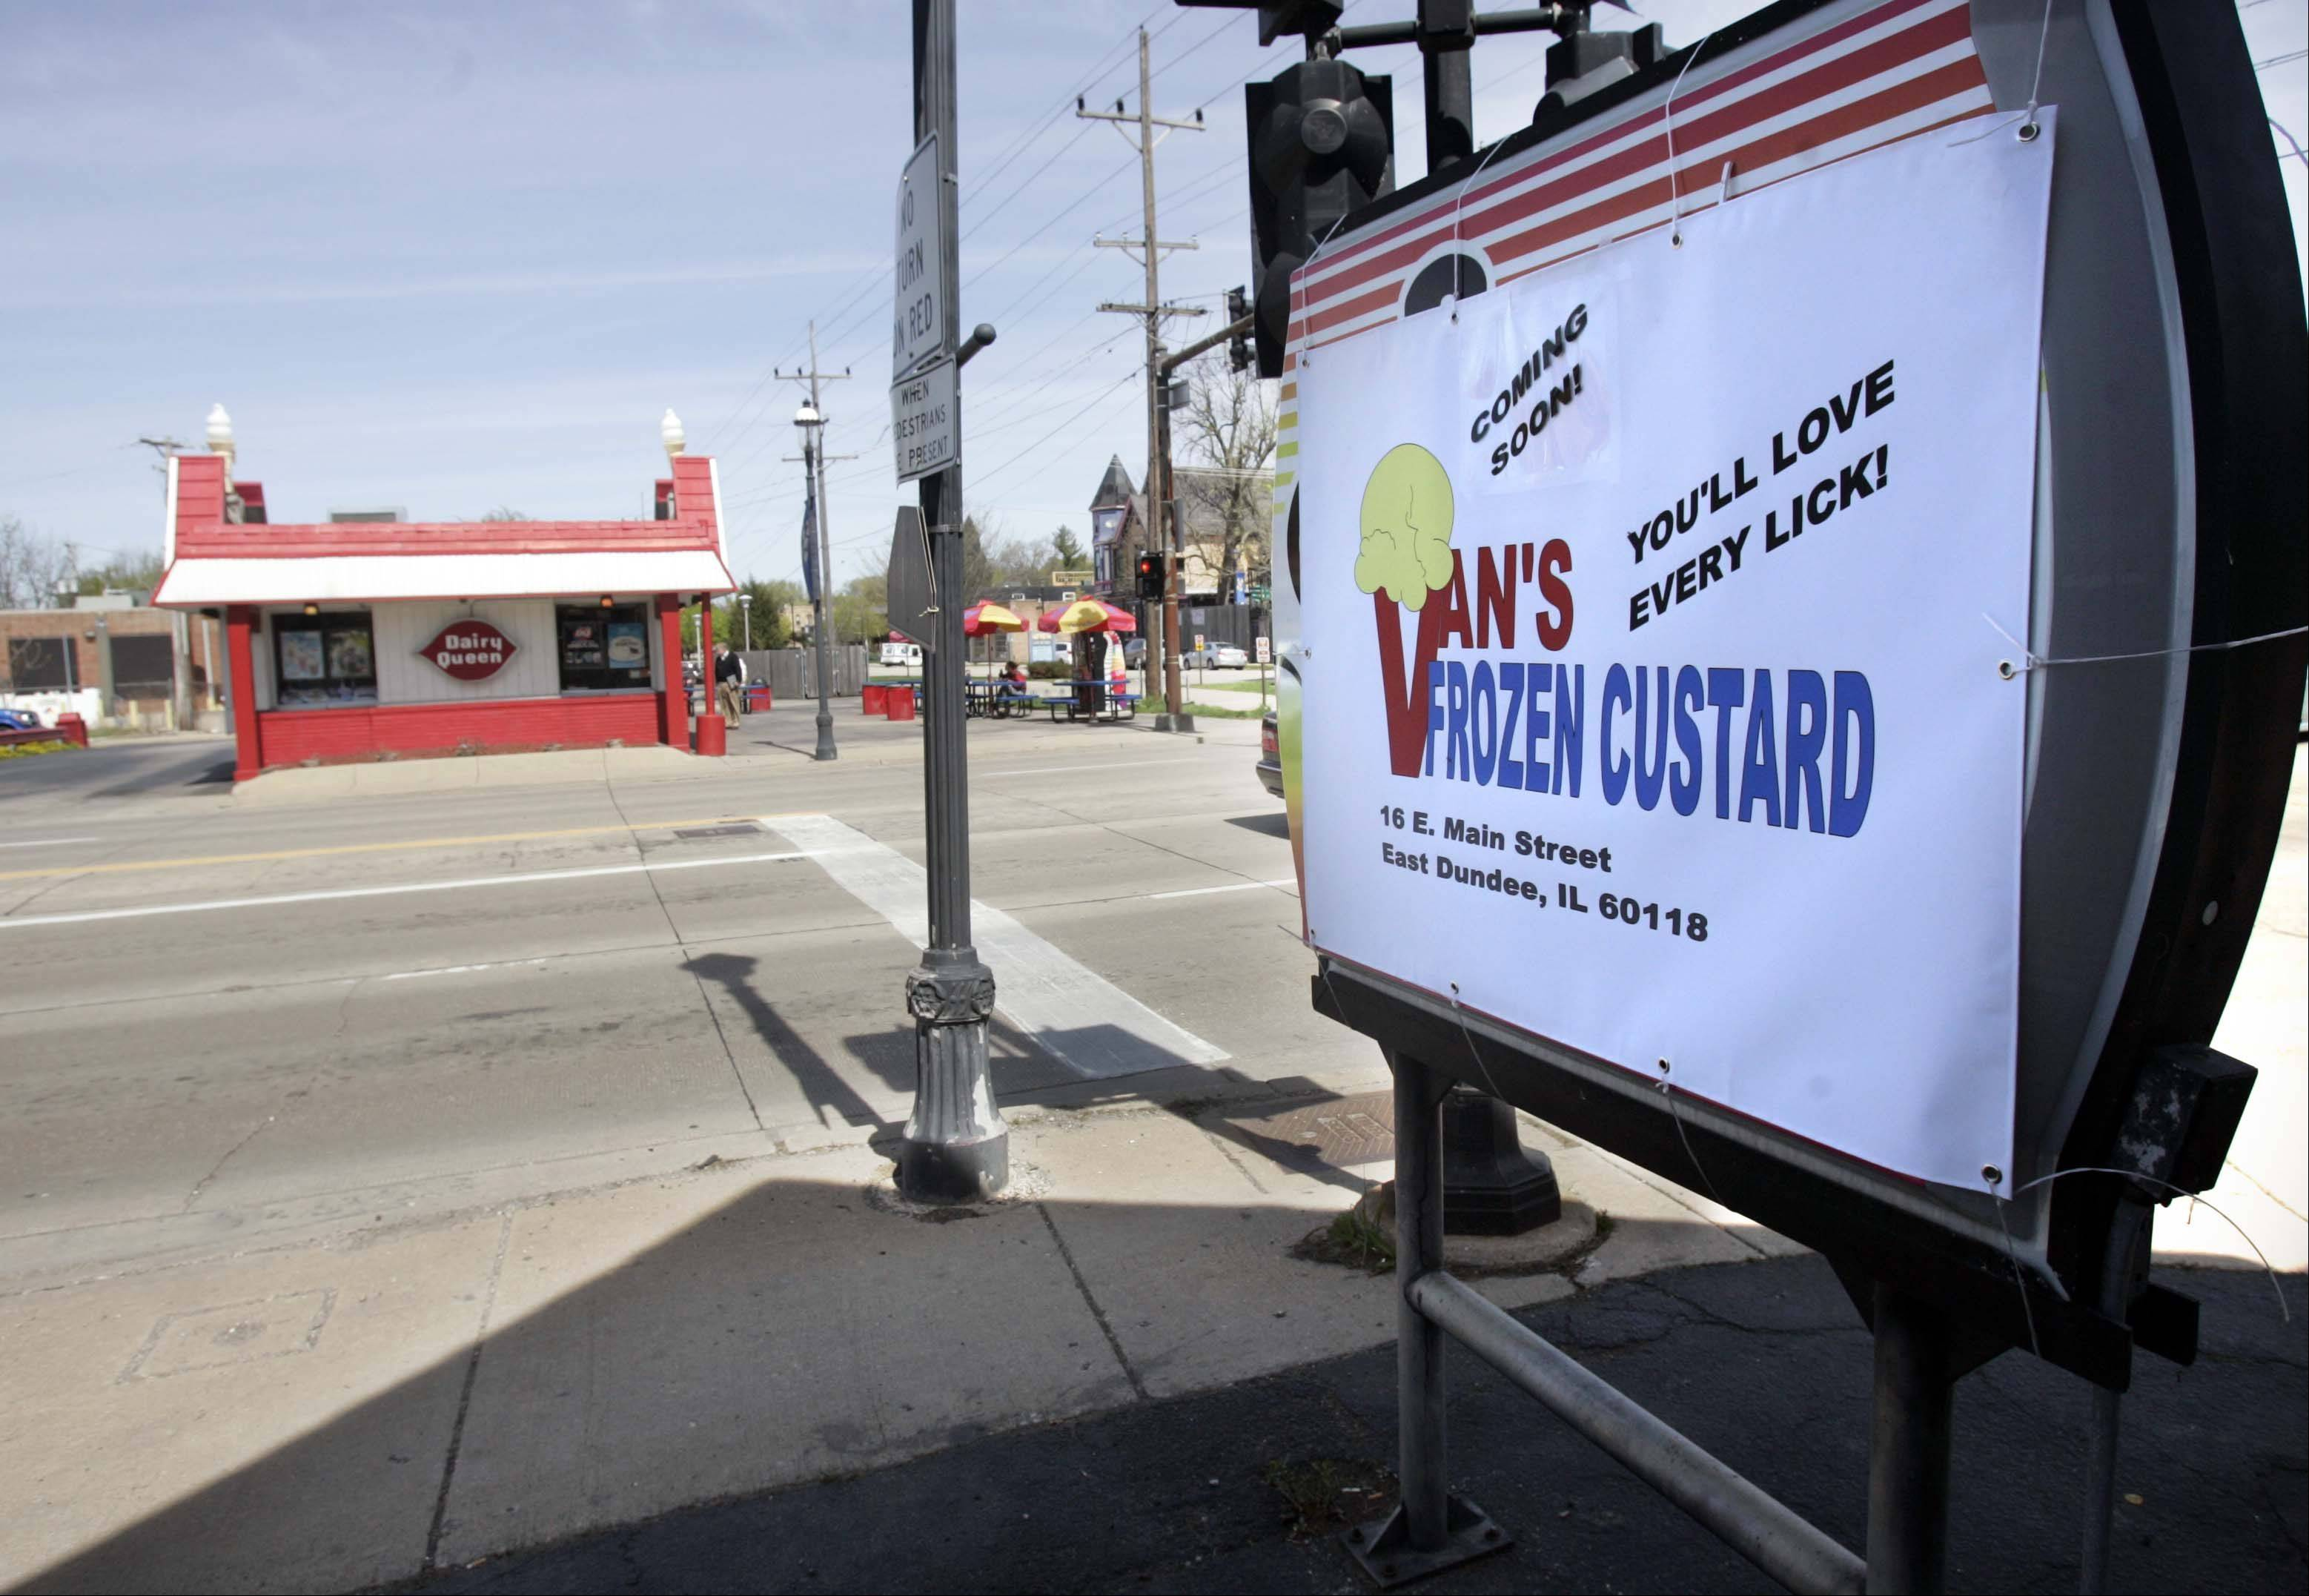 Van's Frozen Custard is moving to East Dundee on Route 72 (Main Street) and River Street, across the street from Dairy Queen. Van's was in Carpentersville for five years, but jumped at the chance to be near the East Dundee bike path.